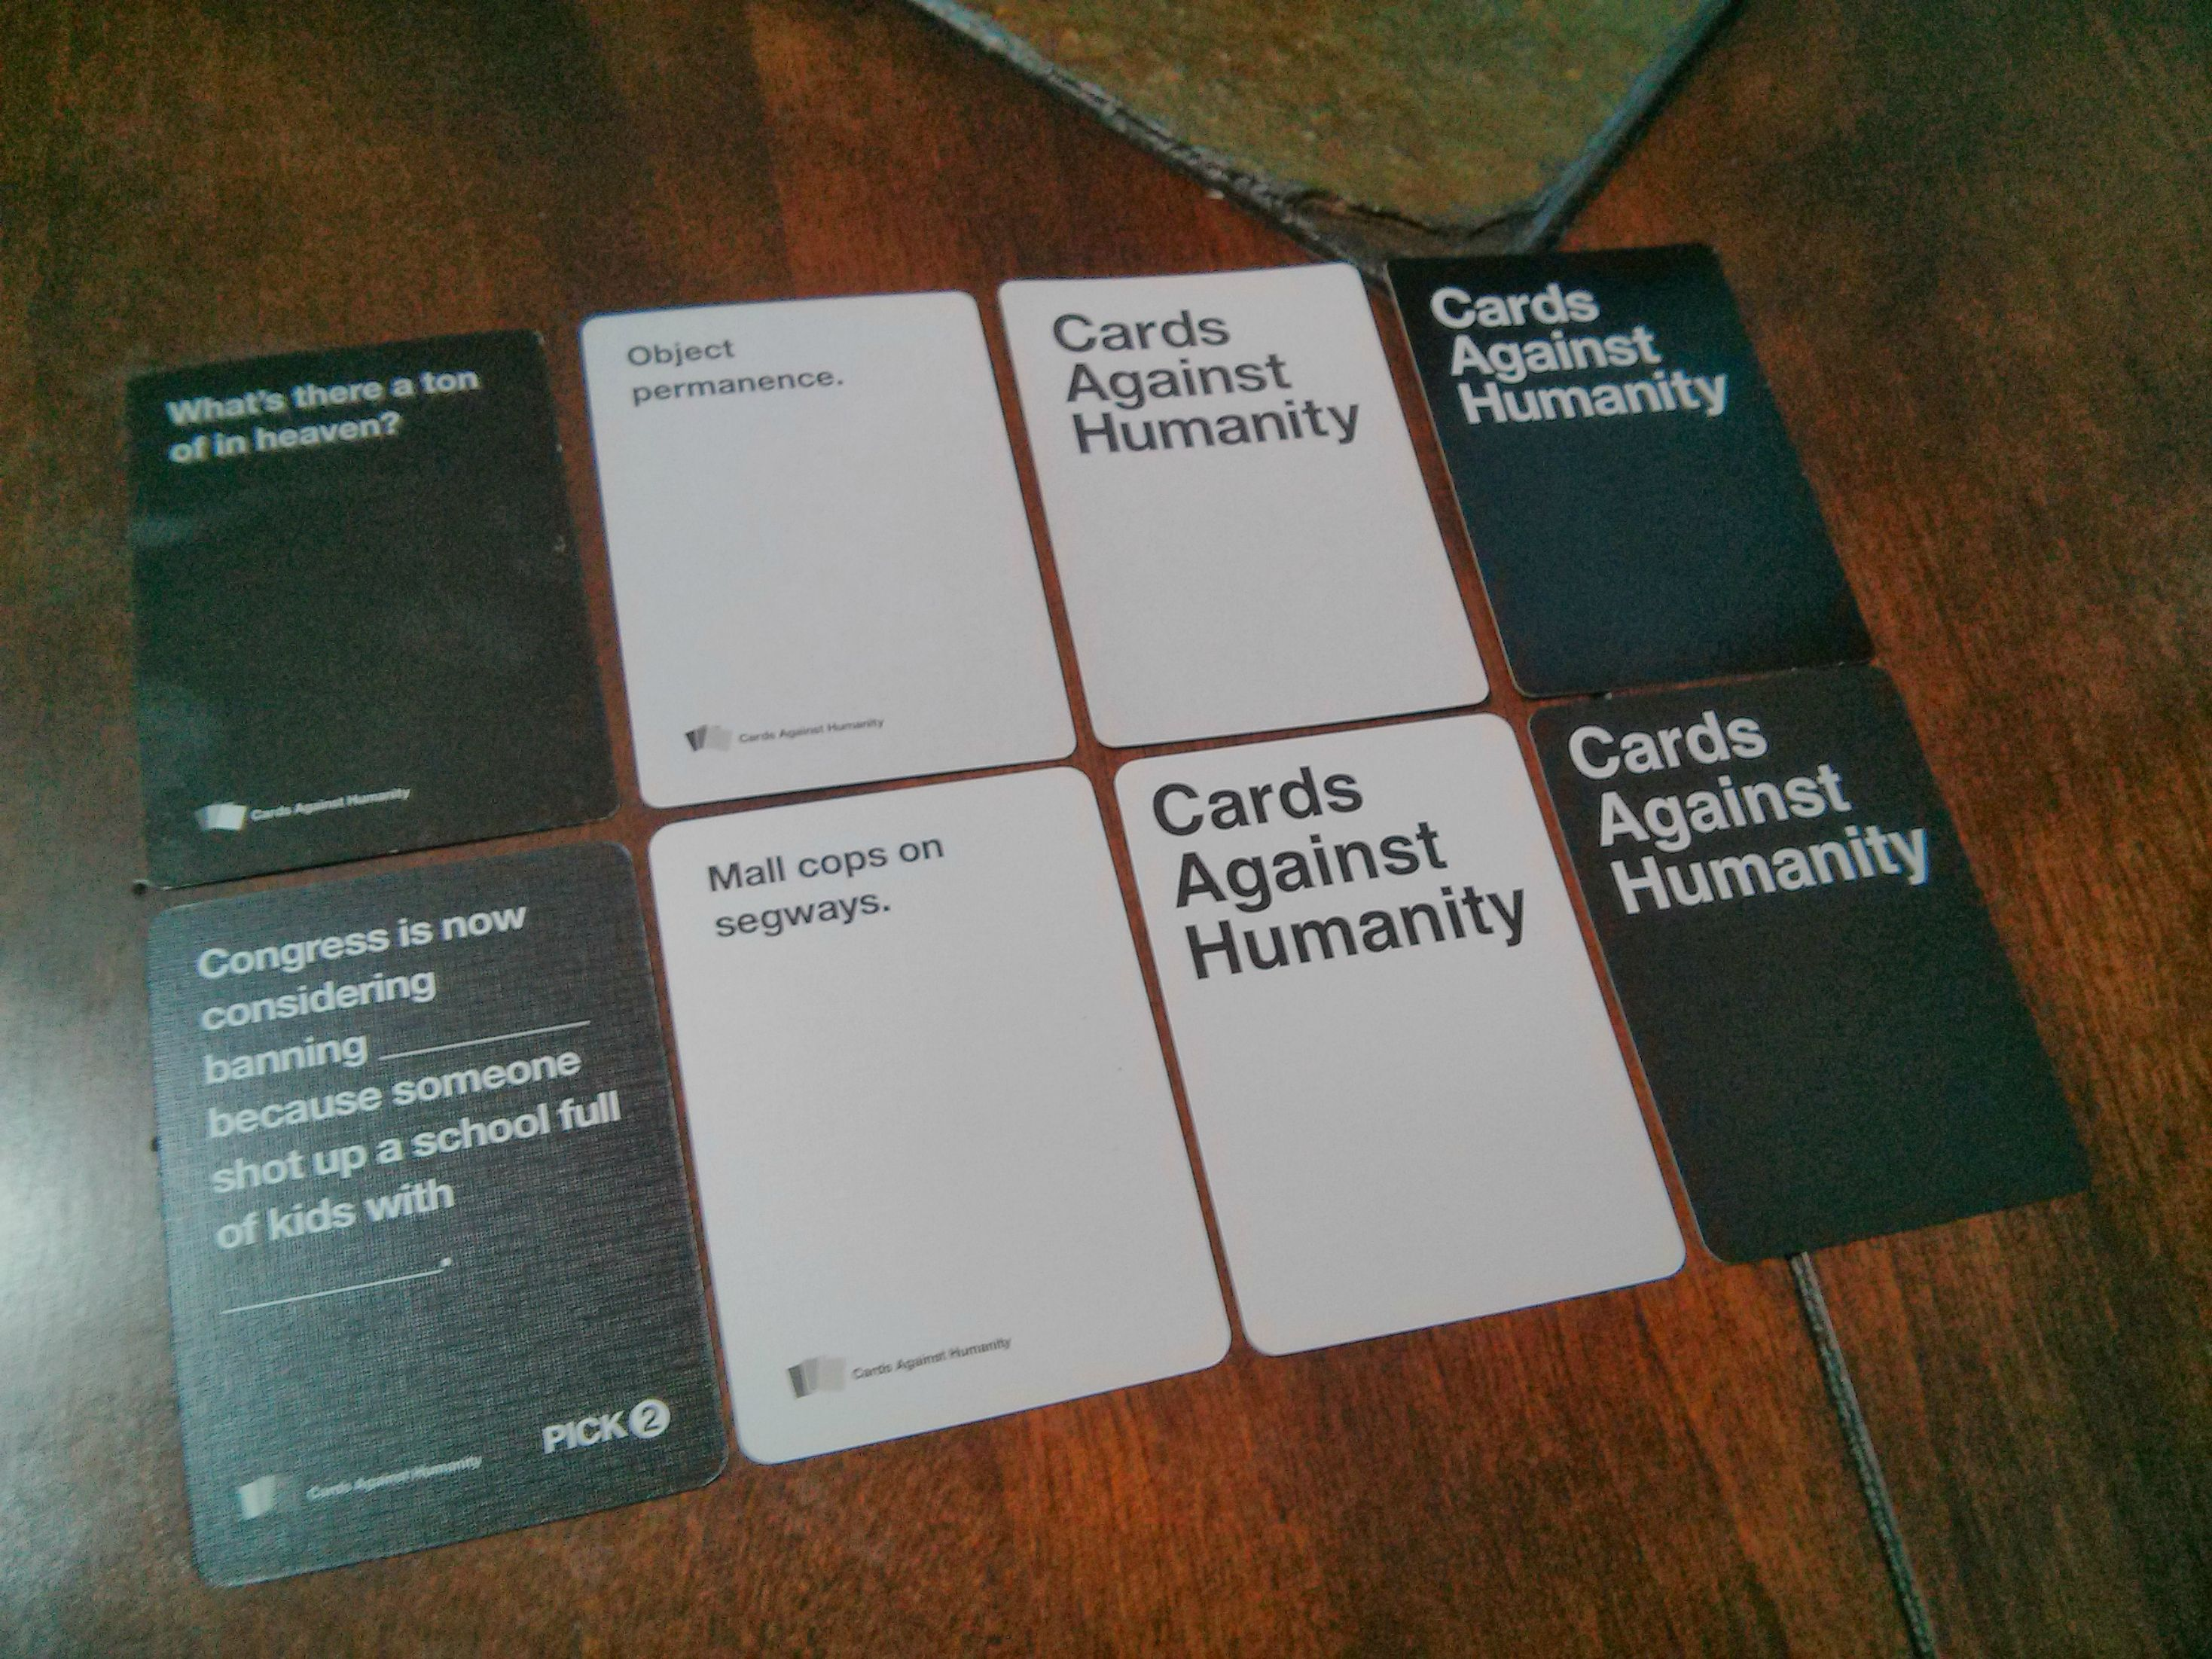 Thanks to all your suggestions, here is my custom deck Pertaining To Cards Against Humanity Template